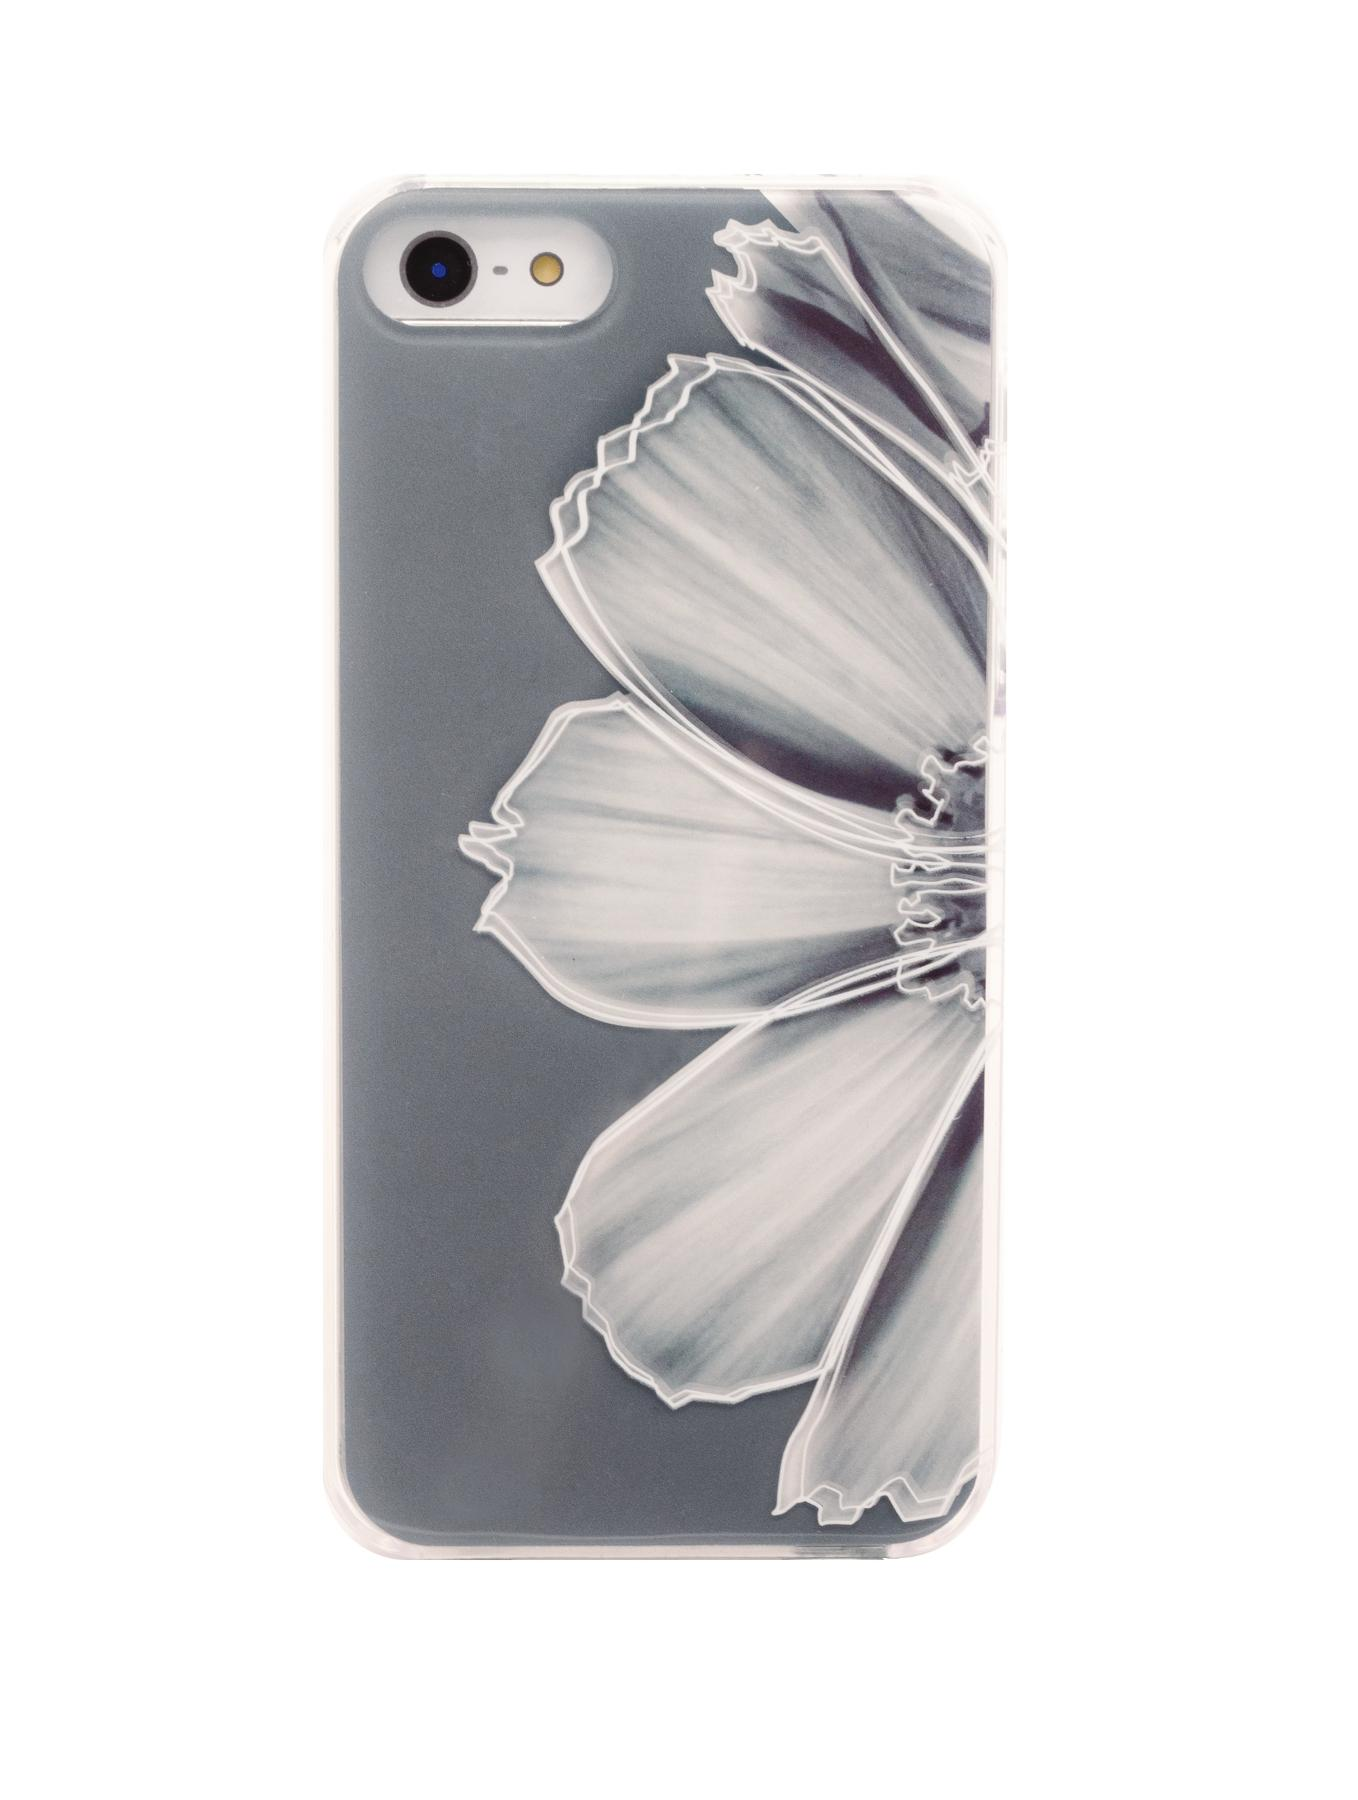 2D Grey Flower iPhone 5/5S Case